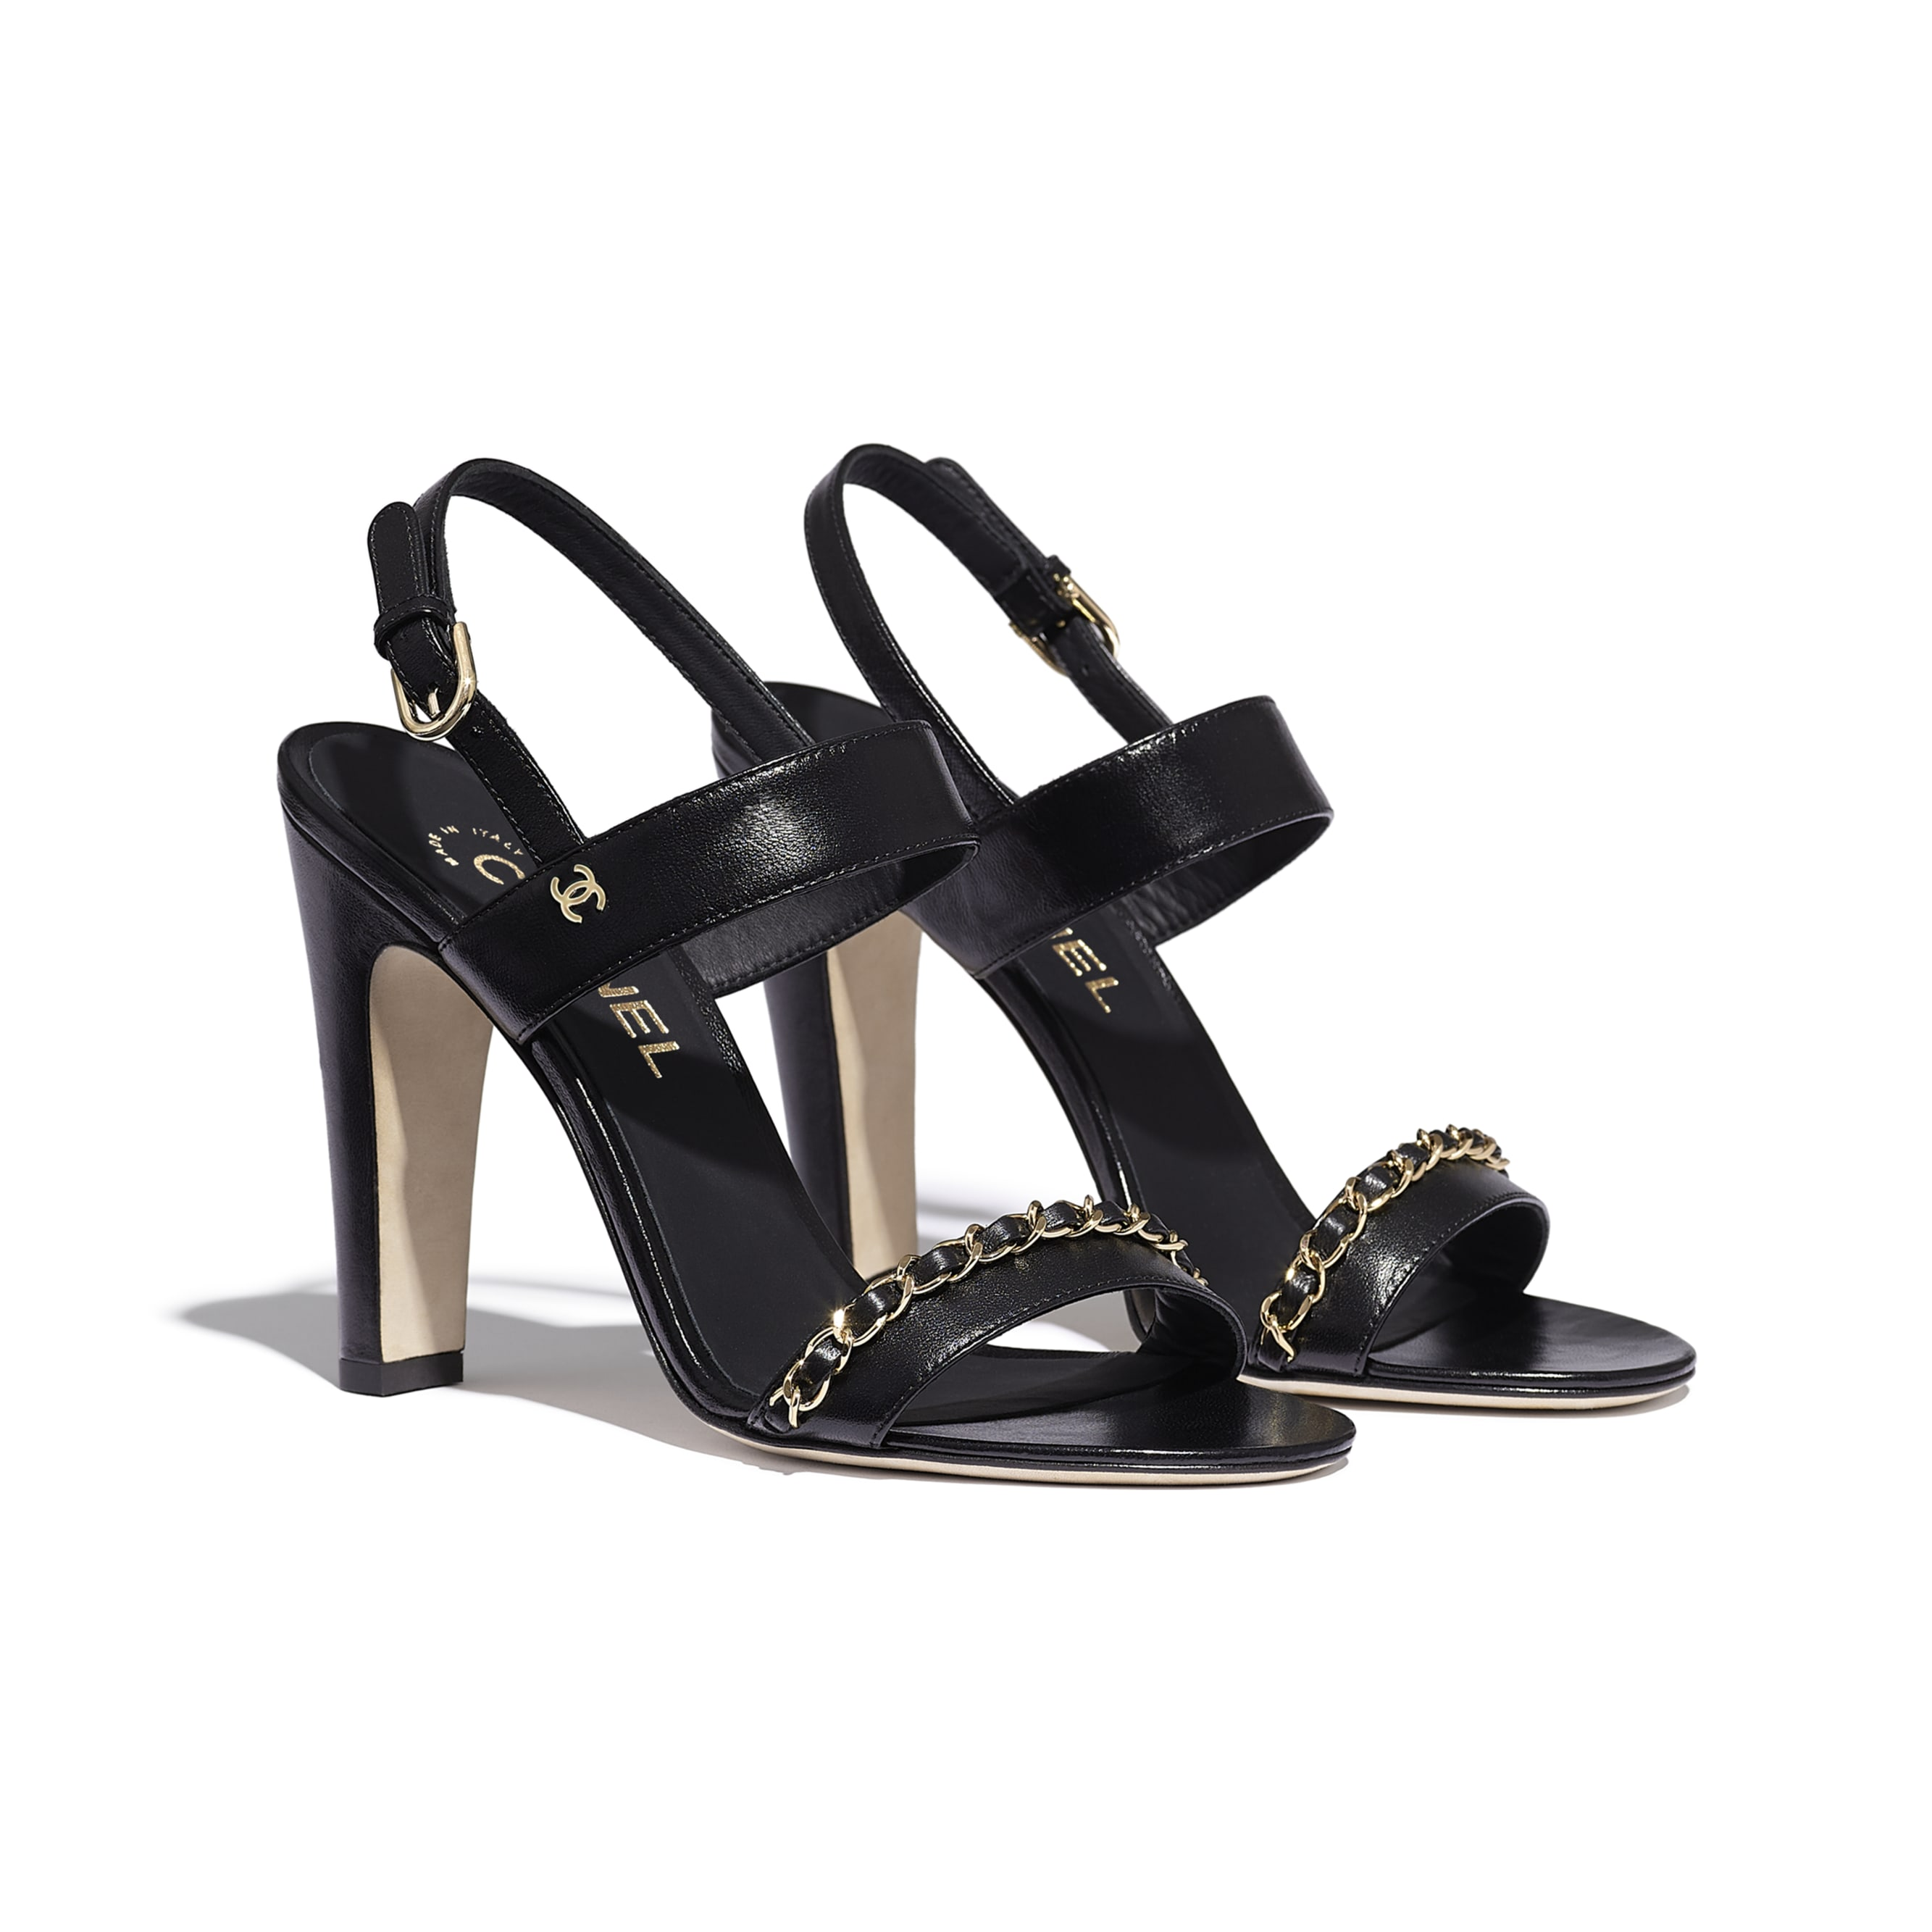 Sandals - Black - Lambskin - Alternative view - see standard sized version